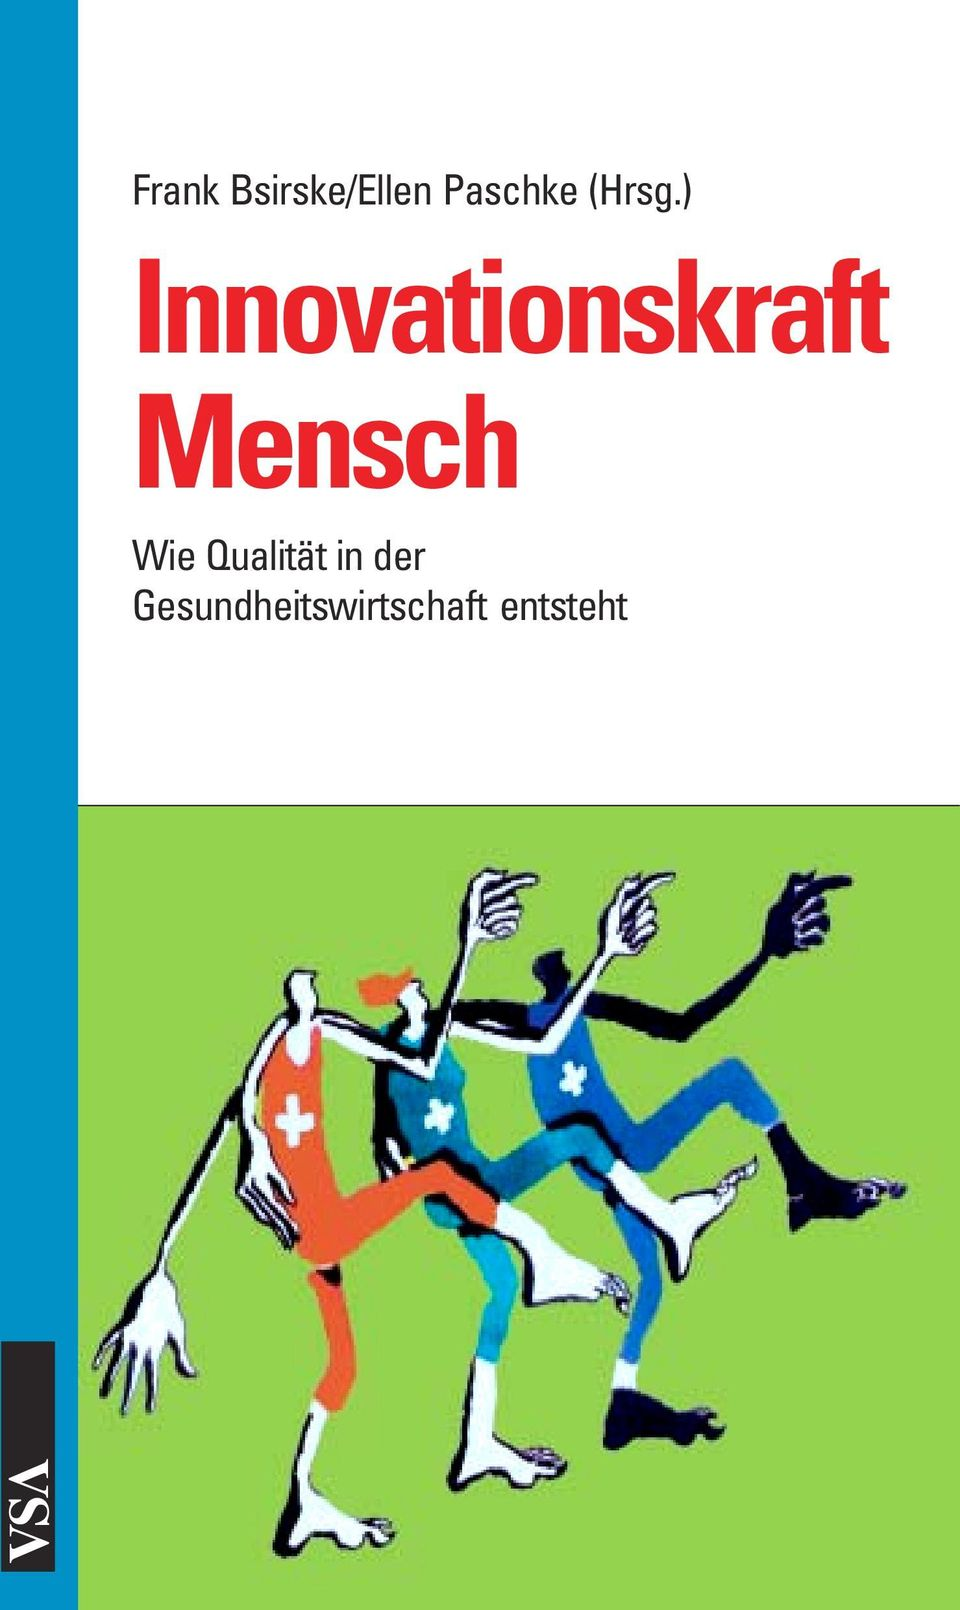 ) Innovationskraft Mensch